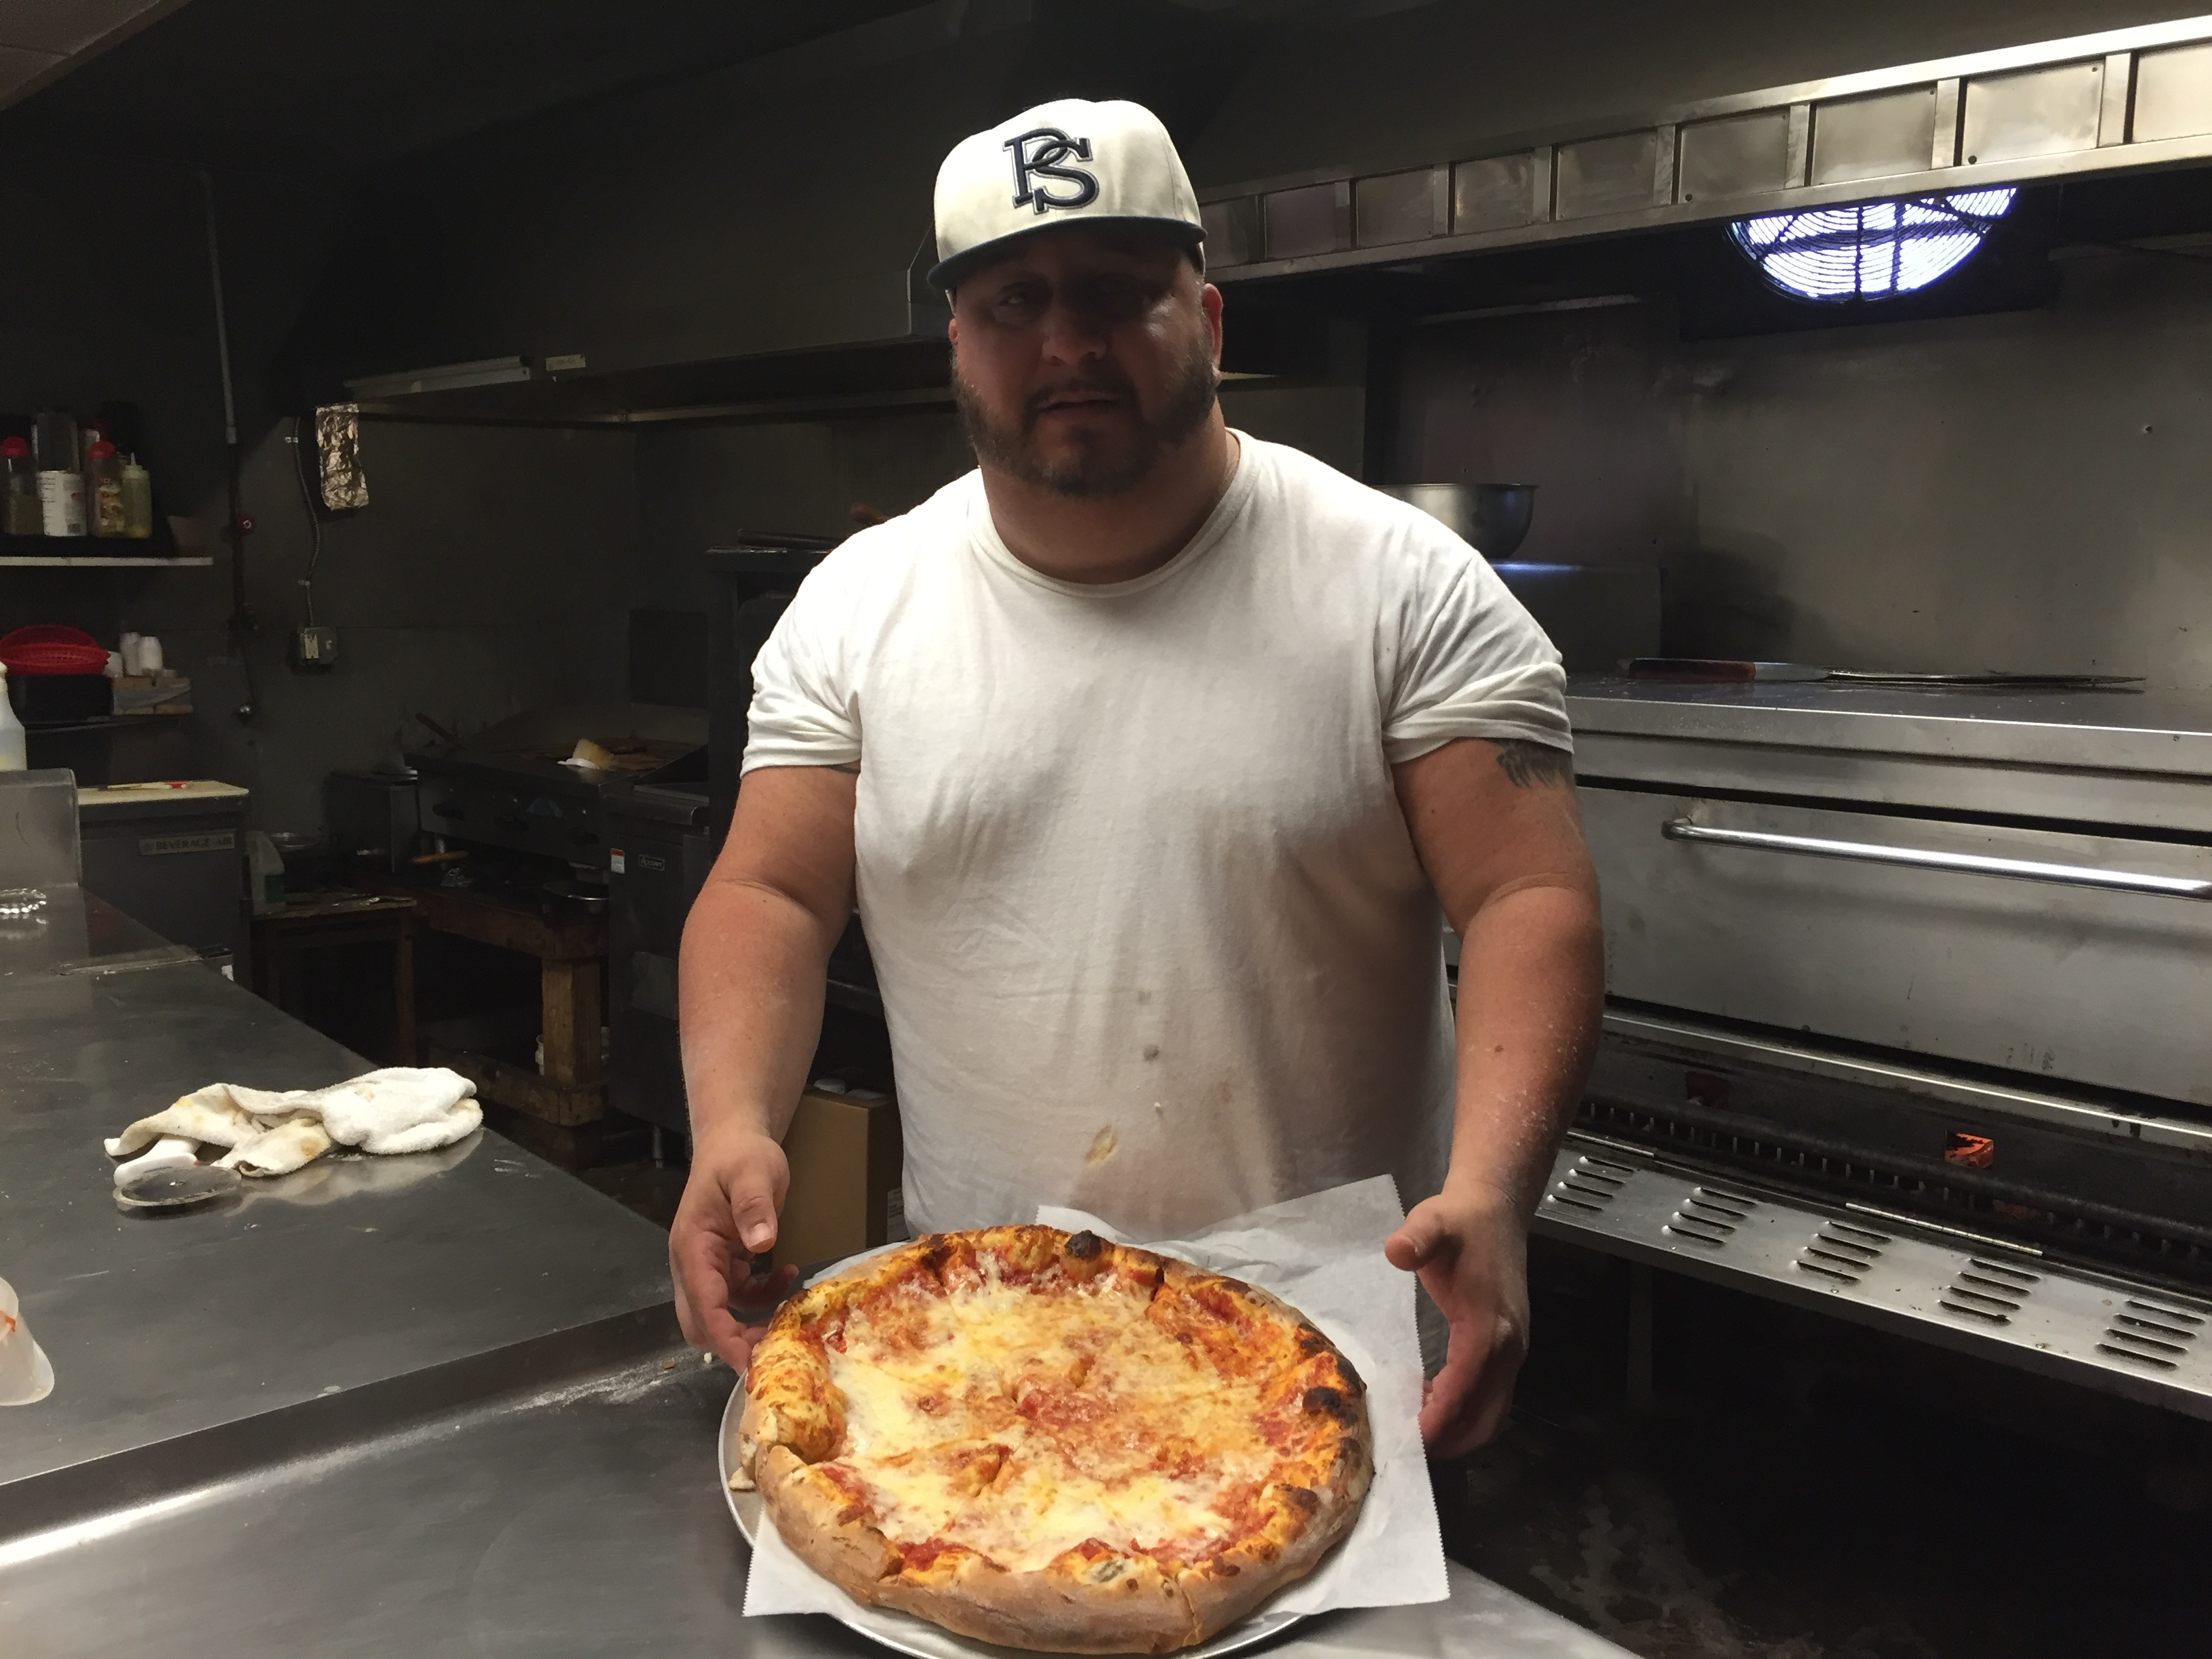 """Marty Coar Jr., who runs Two Brothers Pizza in Dunmore, Pennsylvania, made news during Democratic presidential candidate Hillary Clinton's last visit when he made what he called a """"Madam President"""" pizza topped with hot sauce. (A. Pande/VOA)"""